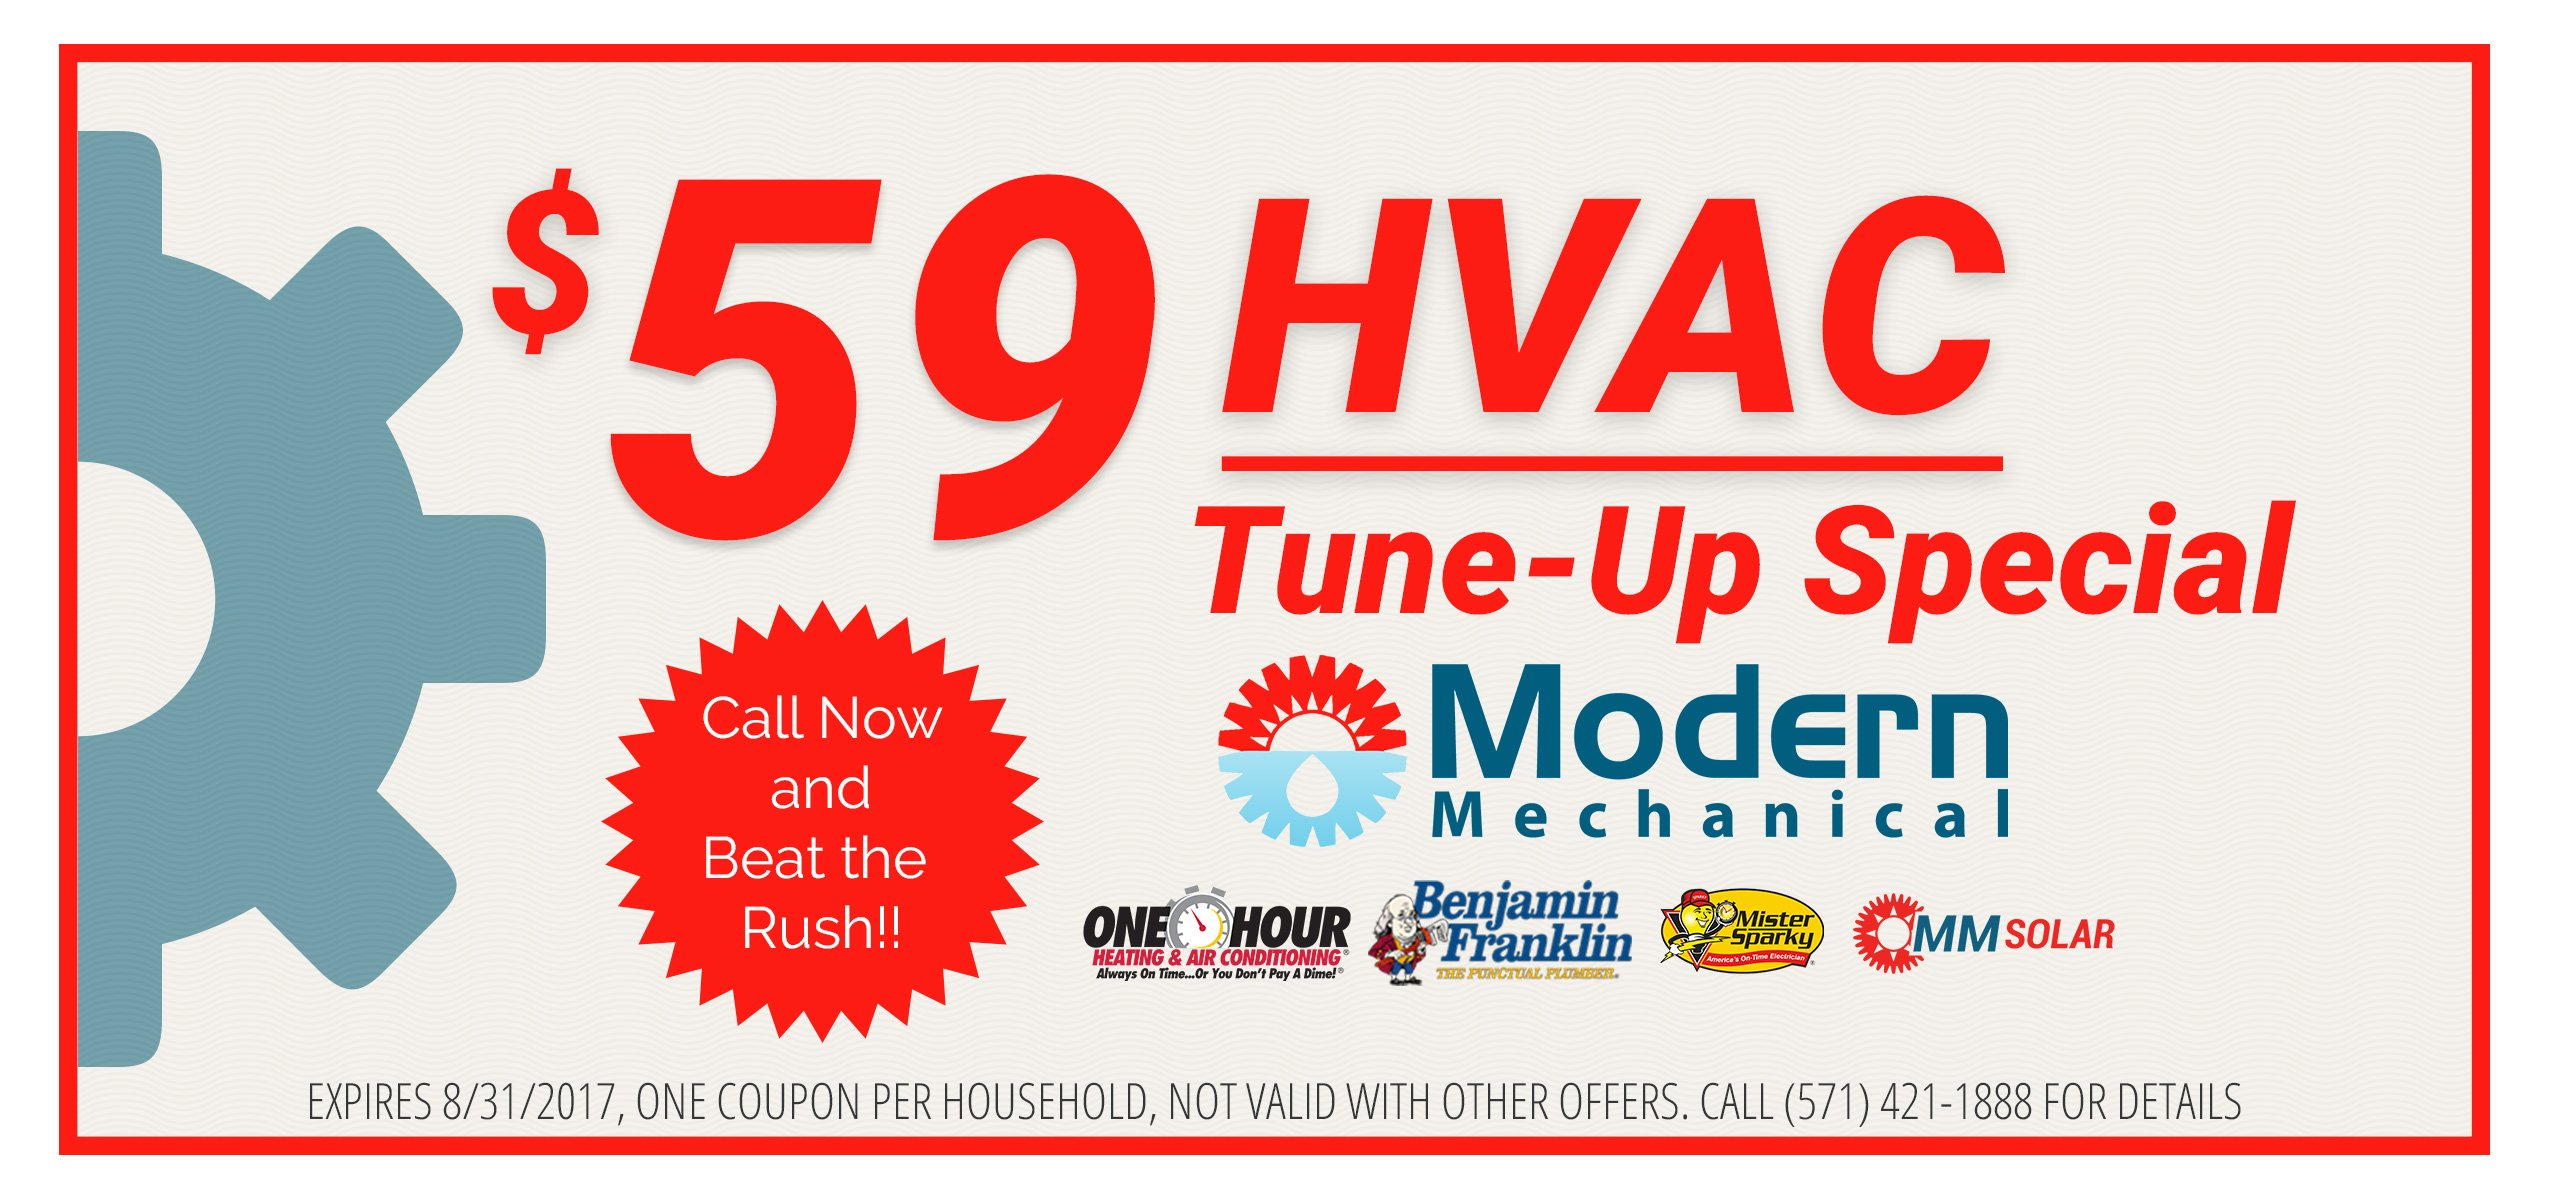 $59 hvac tune up special